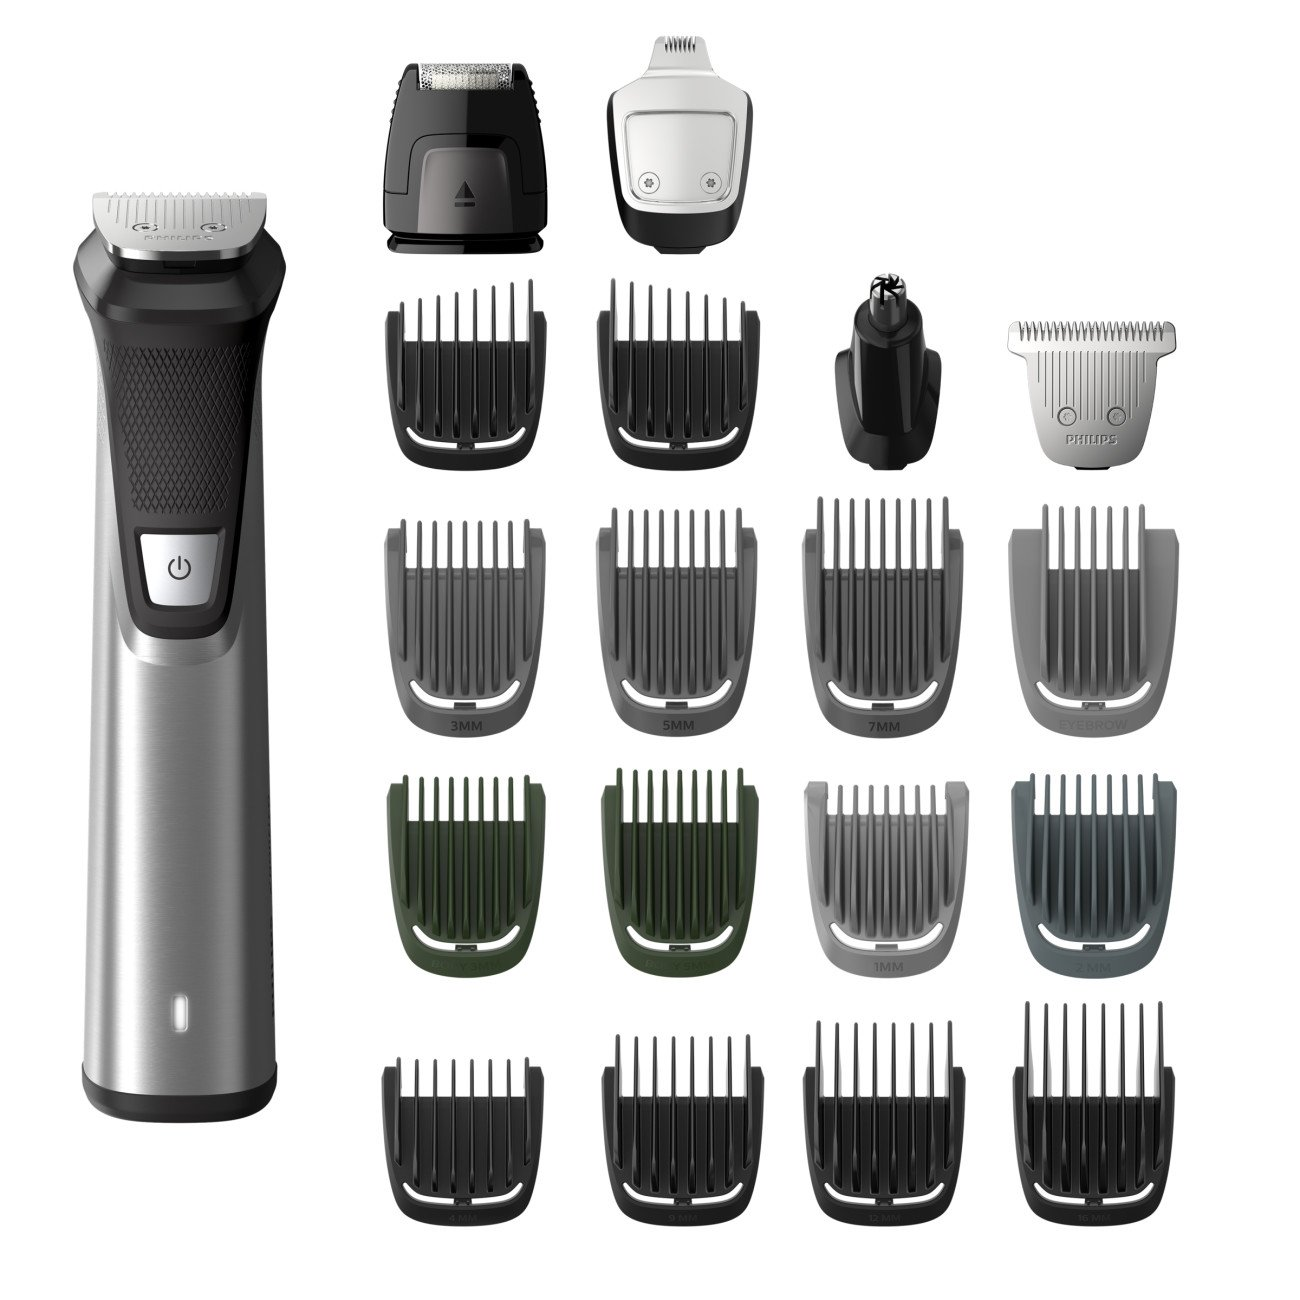 Philips Norelco Multi Groomer MG7750/49-23 piece, beard, body, face, nose, and ear hair trimmer, shaver, and clipper